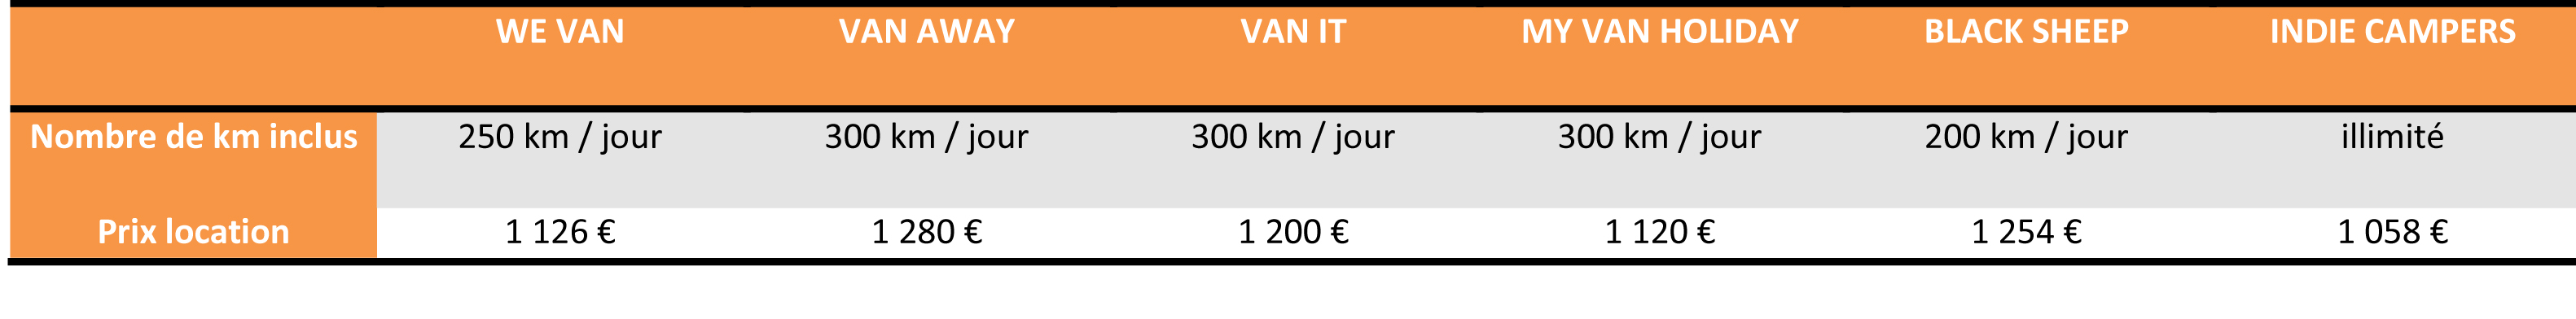 location de van